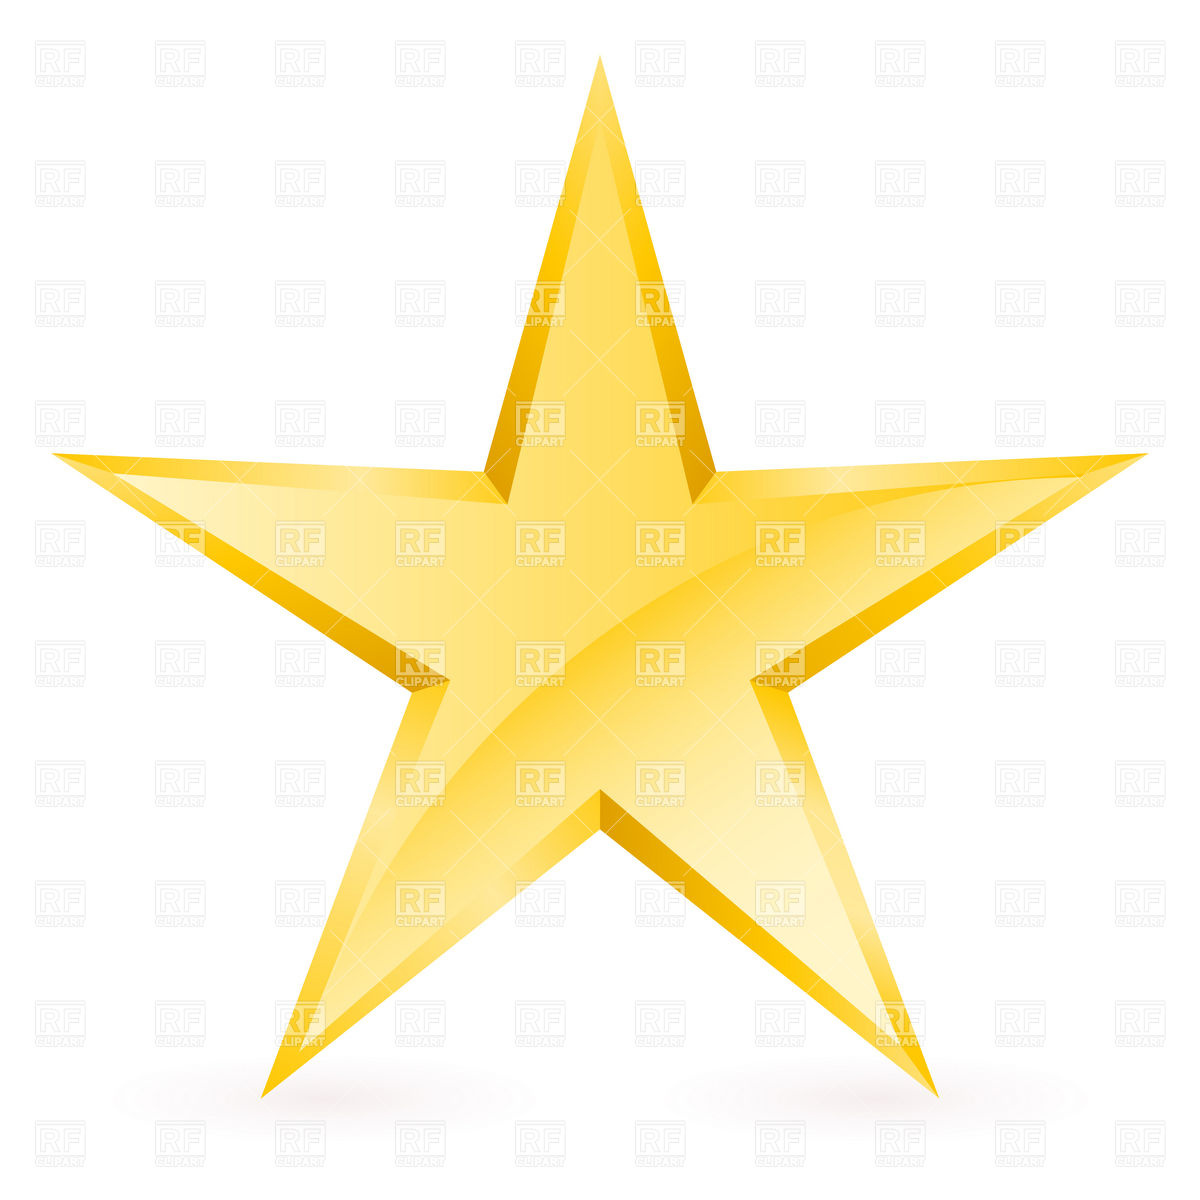 Simple Gold Star 8279 Download Royalty F-Simple Gold Star 8279 Download Royalty Free Vector Clipart Eps-9